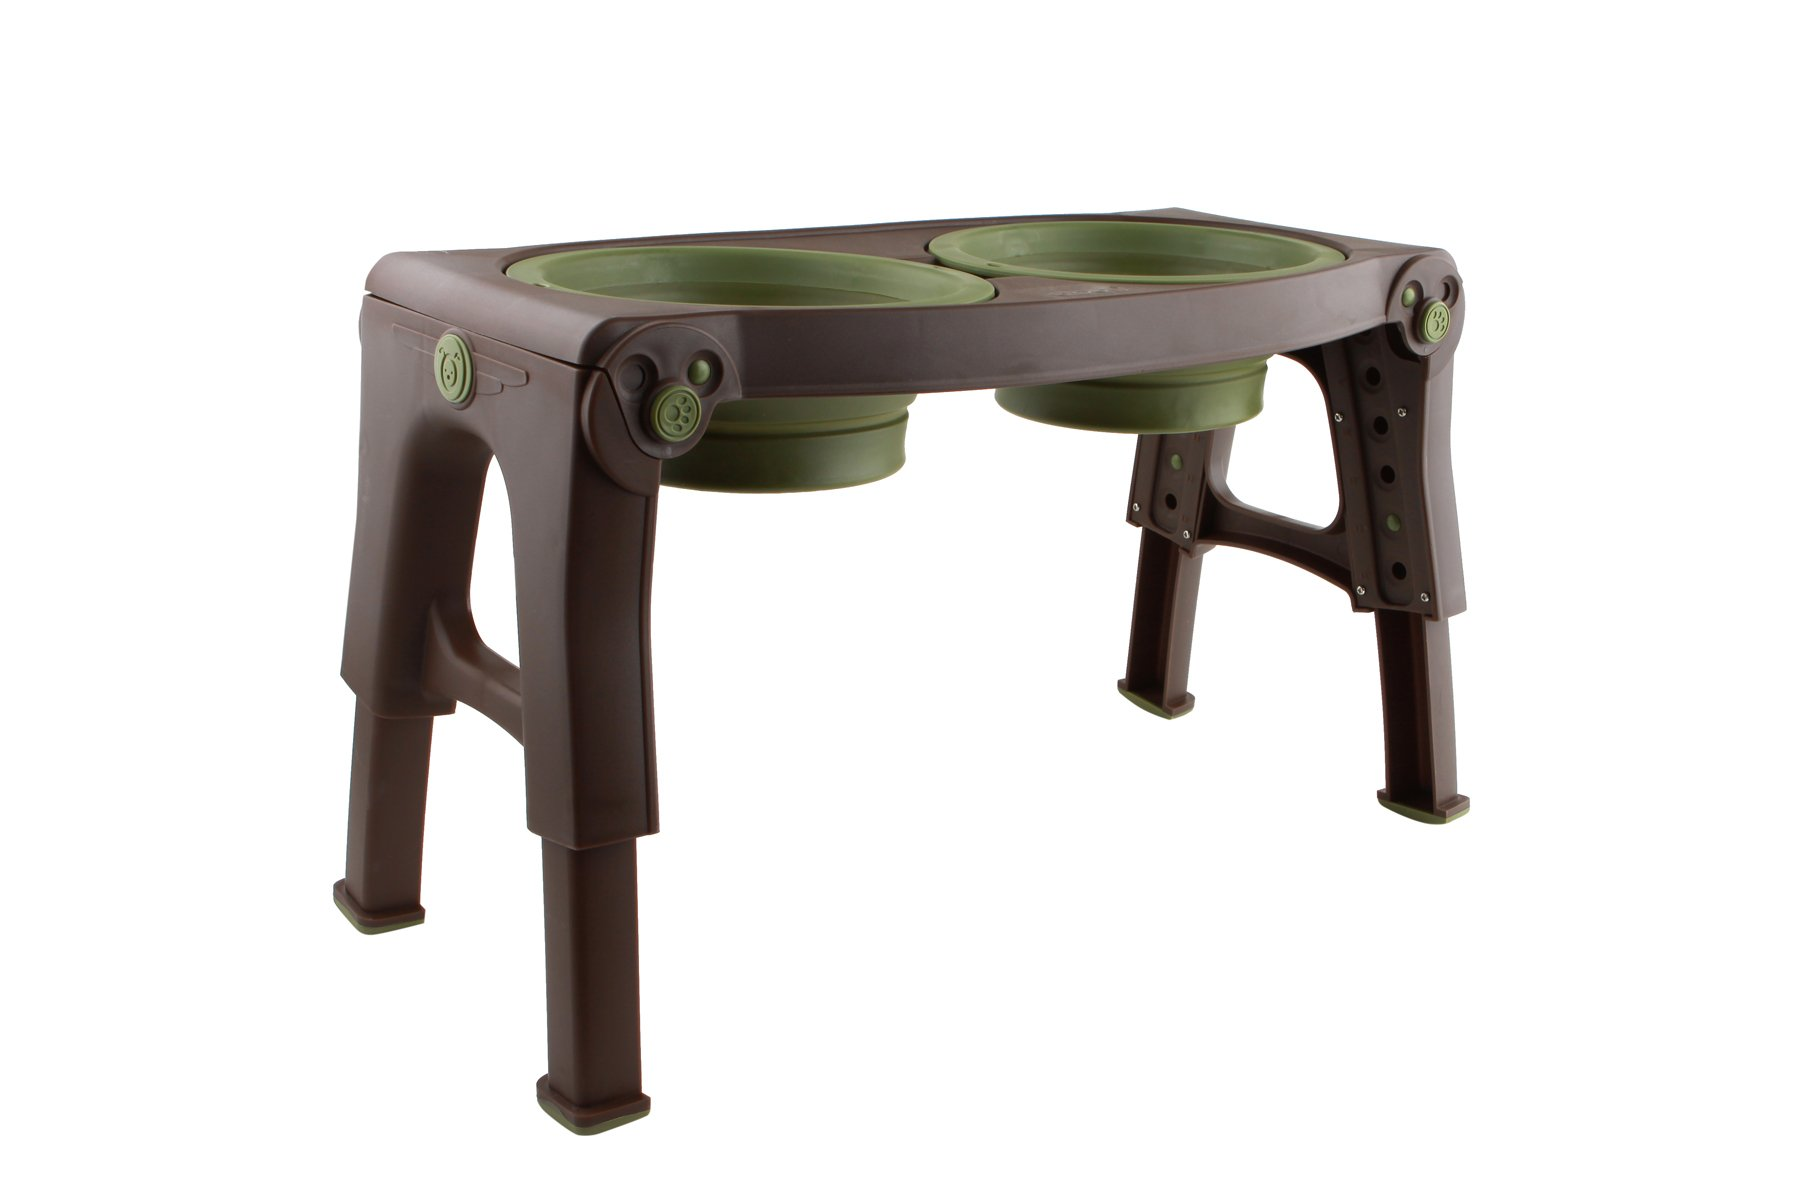 Dexas Popware for Pets Adjustable/Elevated Feeder Bowl, Green